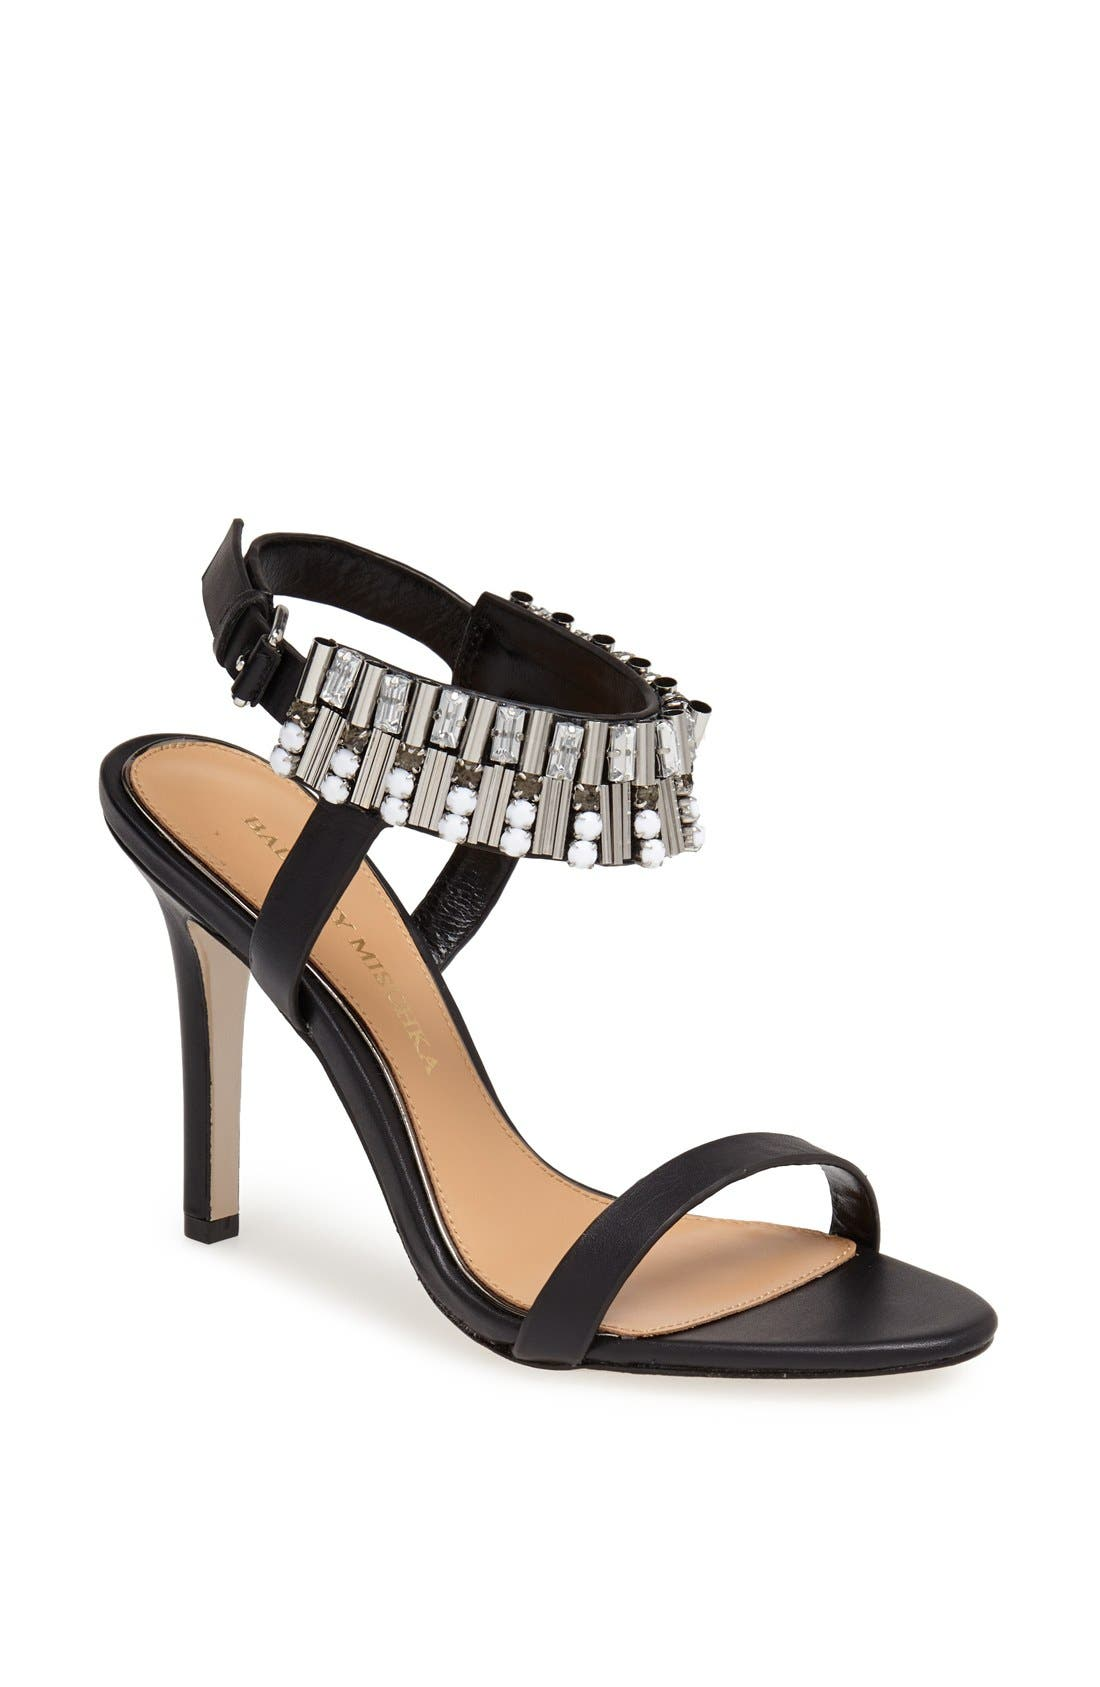 Alternate Image 1 Selected - Badgley Mischka 'Kallan' Crystal Cuff Leather Sandal